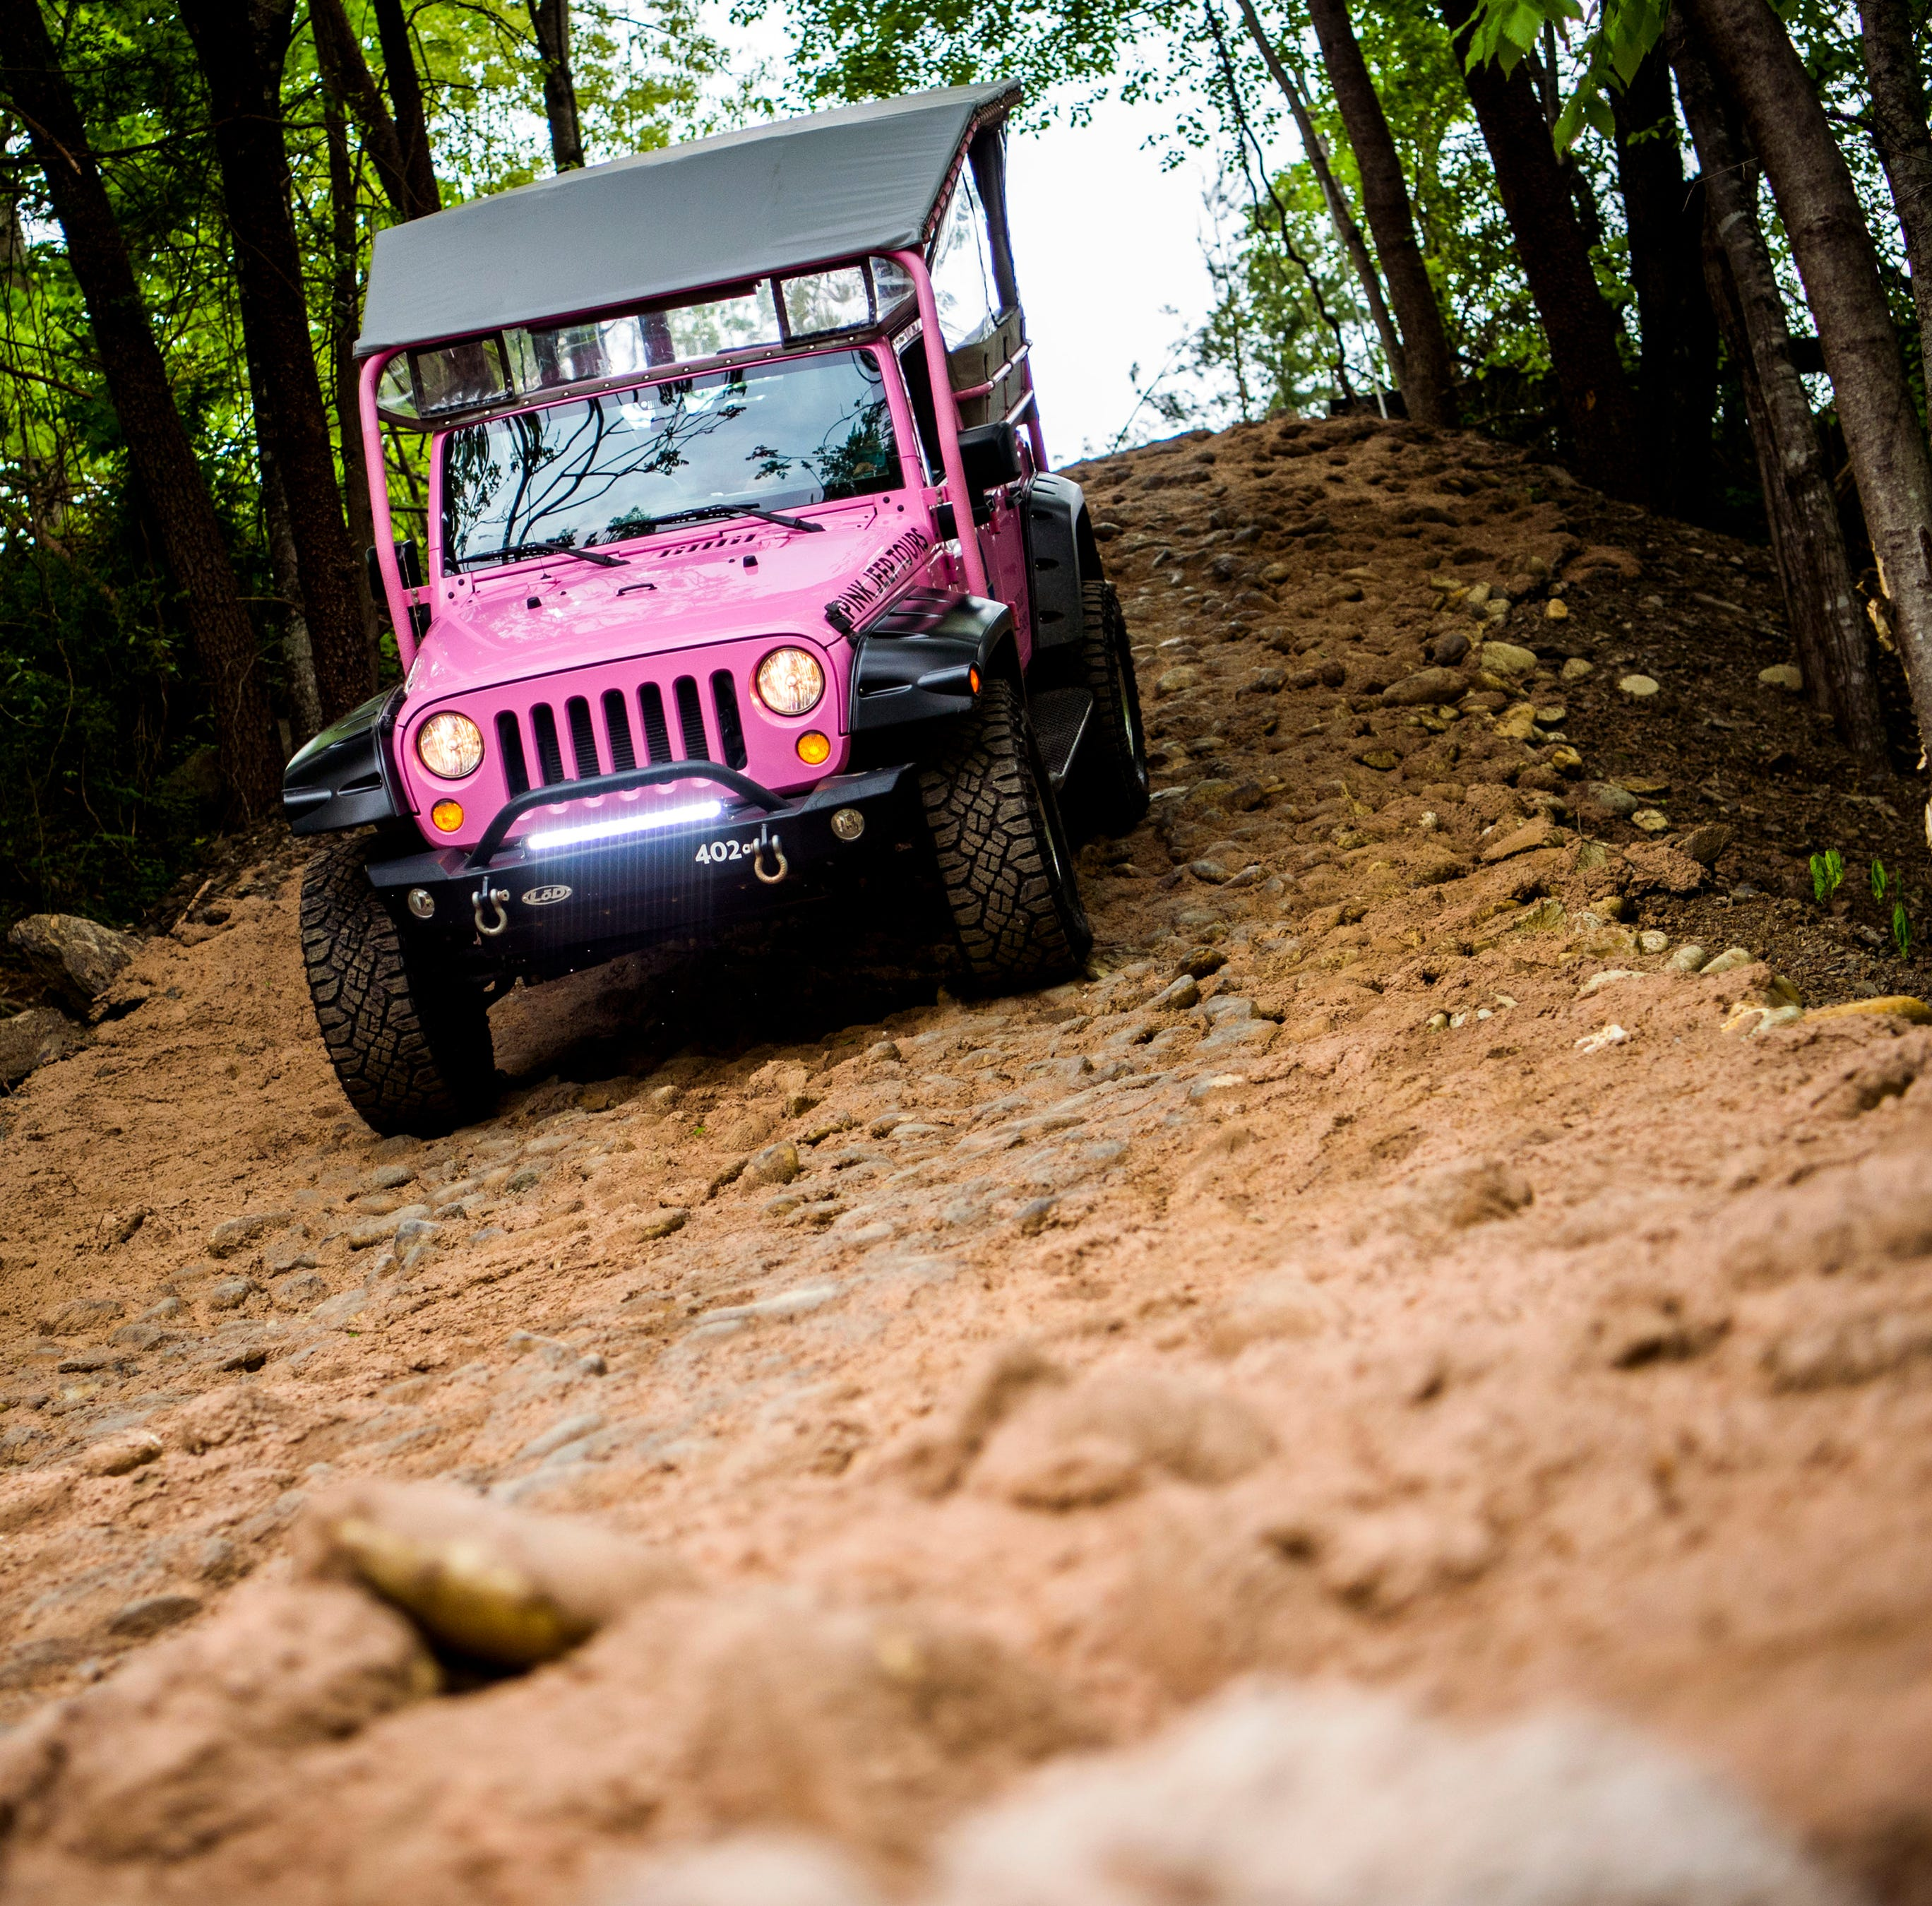 Pink Jeep Tours has opened in Smoky Mountains. Here's what it's like to take a ride.